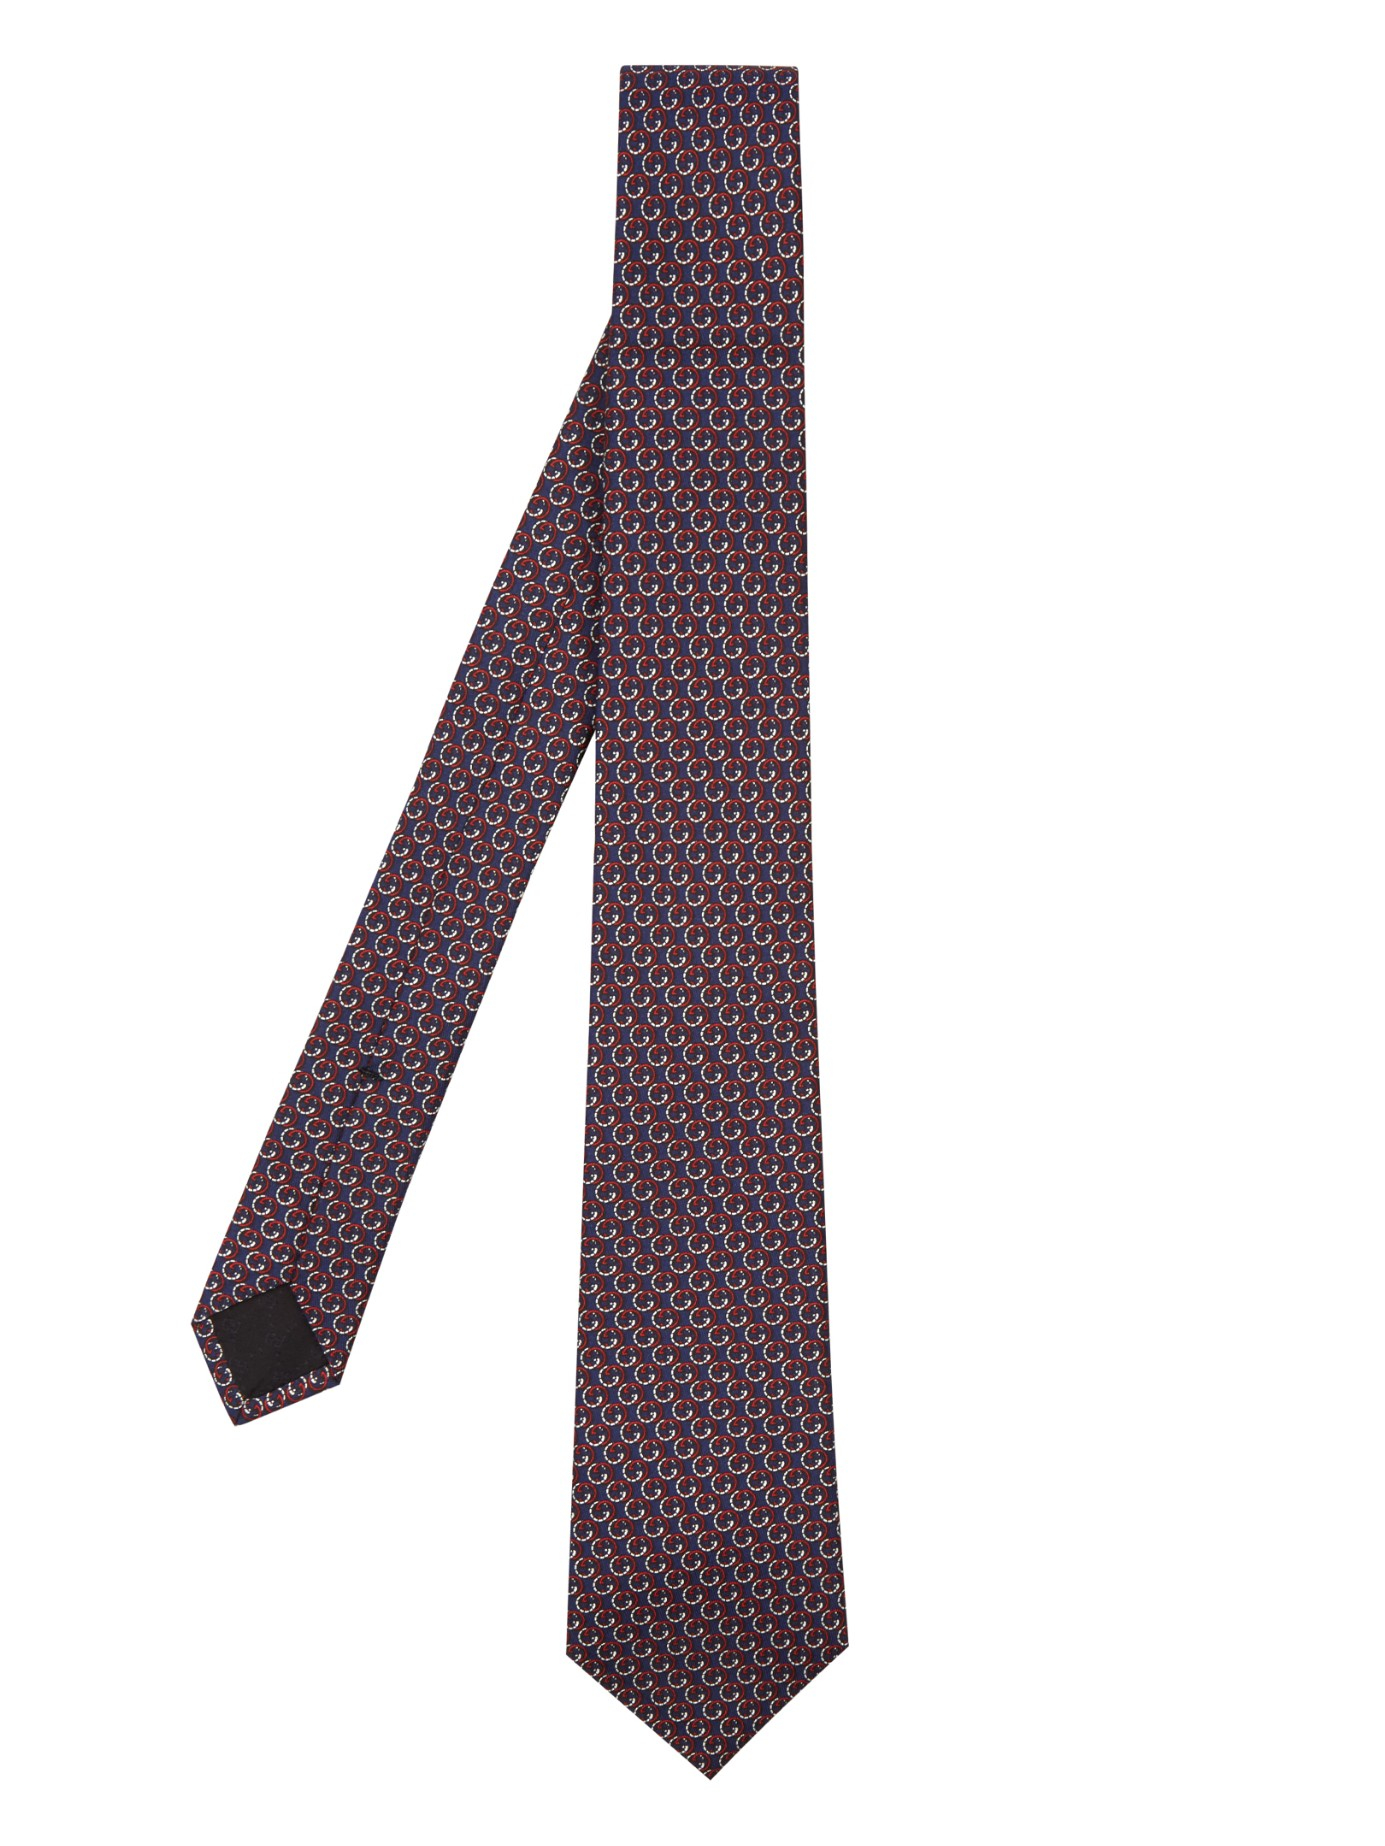 873e73e2a9ac Gucci Gg-print Silk Tie in Red for Men - Lyst